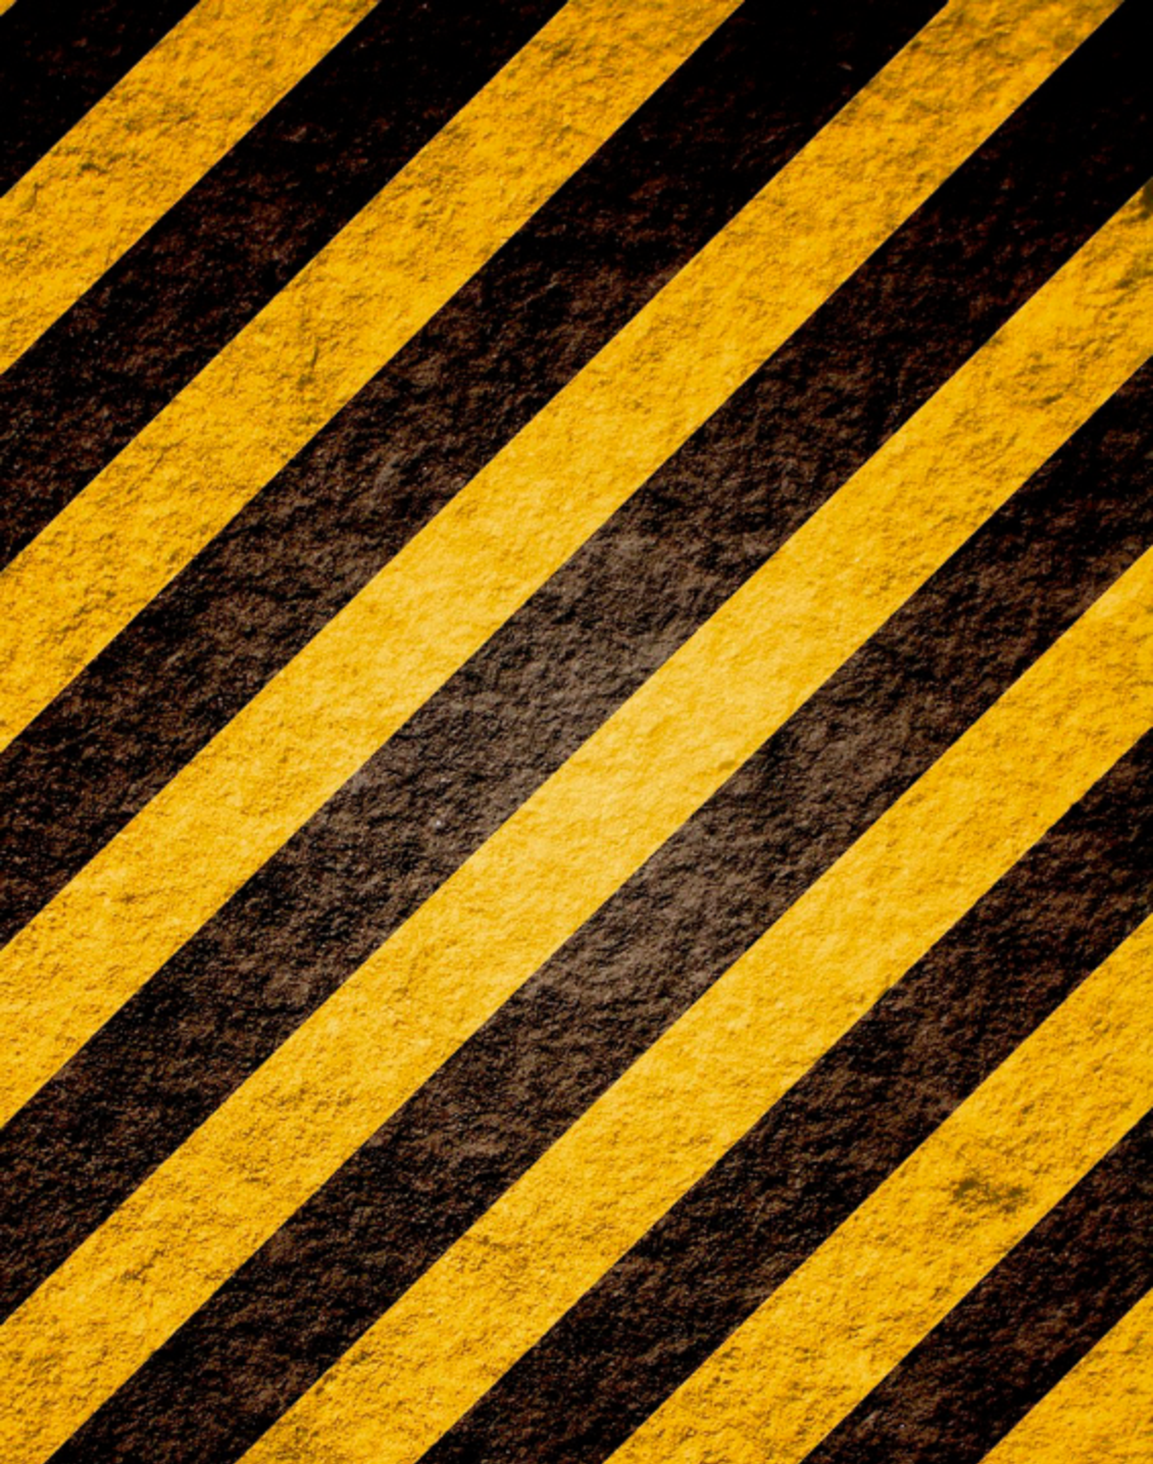 mottled concrete with diagonal yellow and black hazard stripes